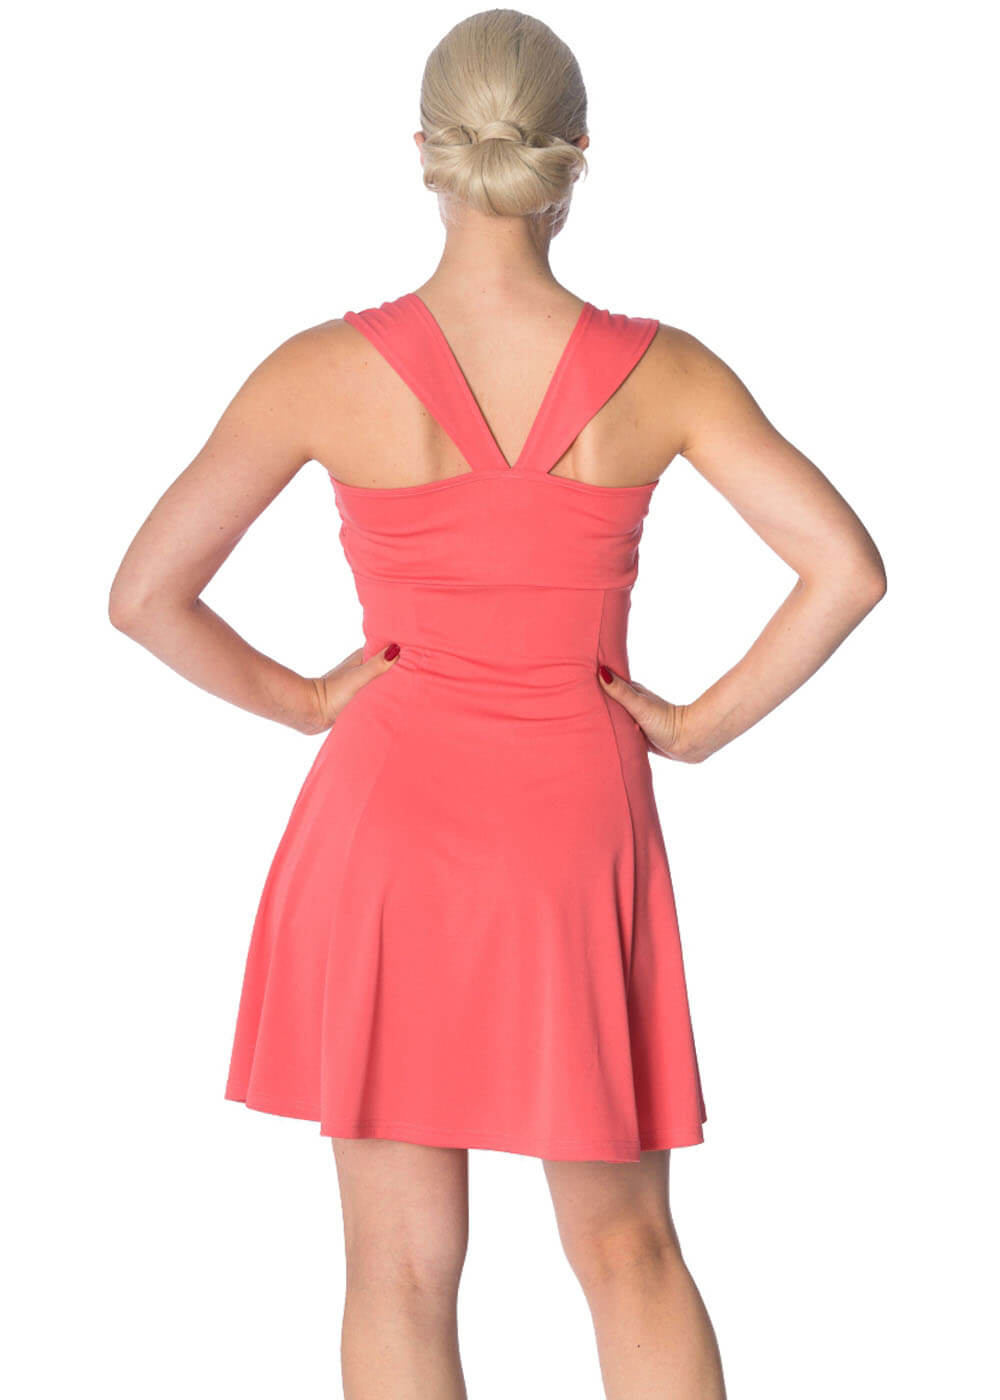 Banned It's The Twist Strappy 60's Jurk Hibiscus